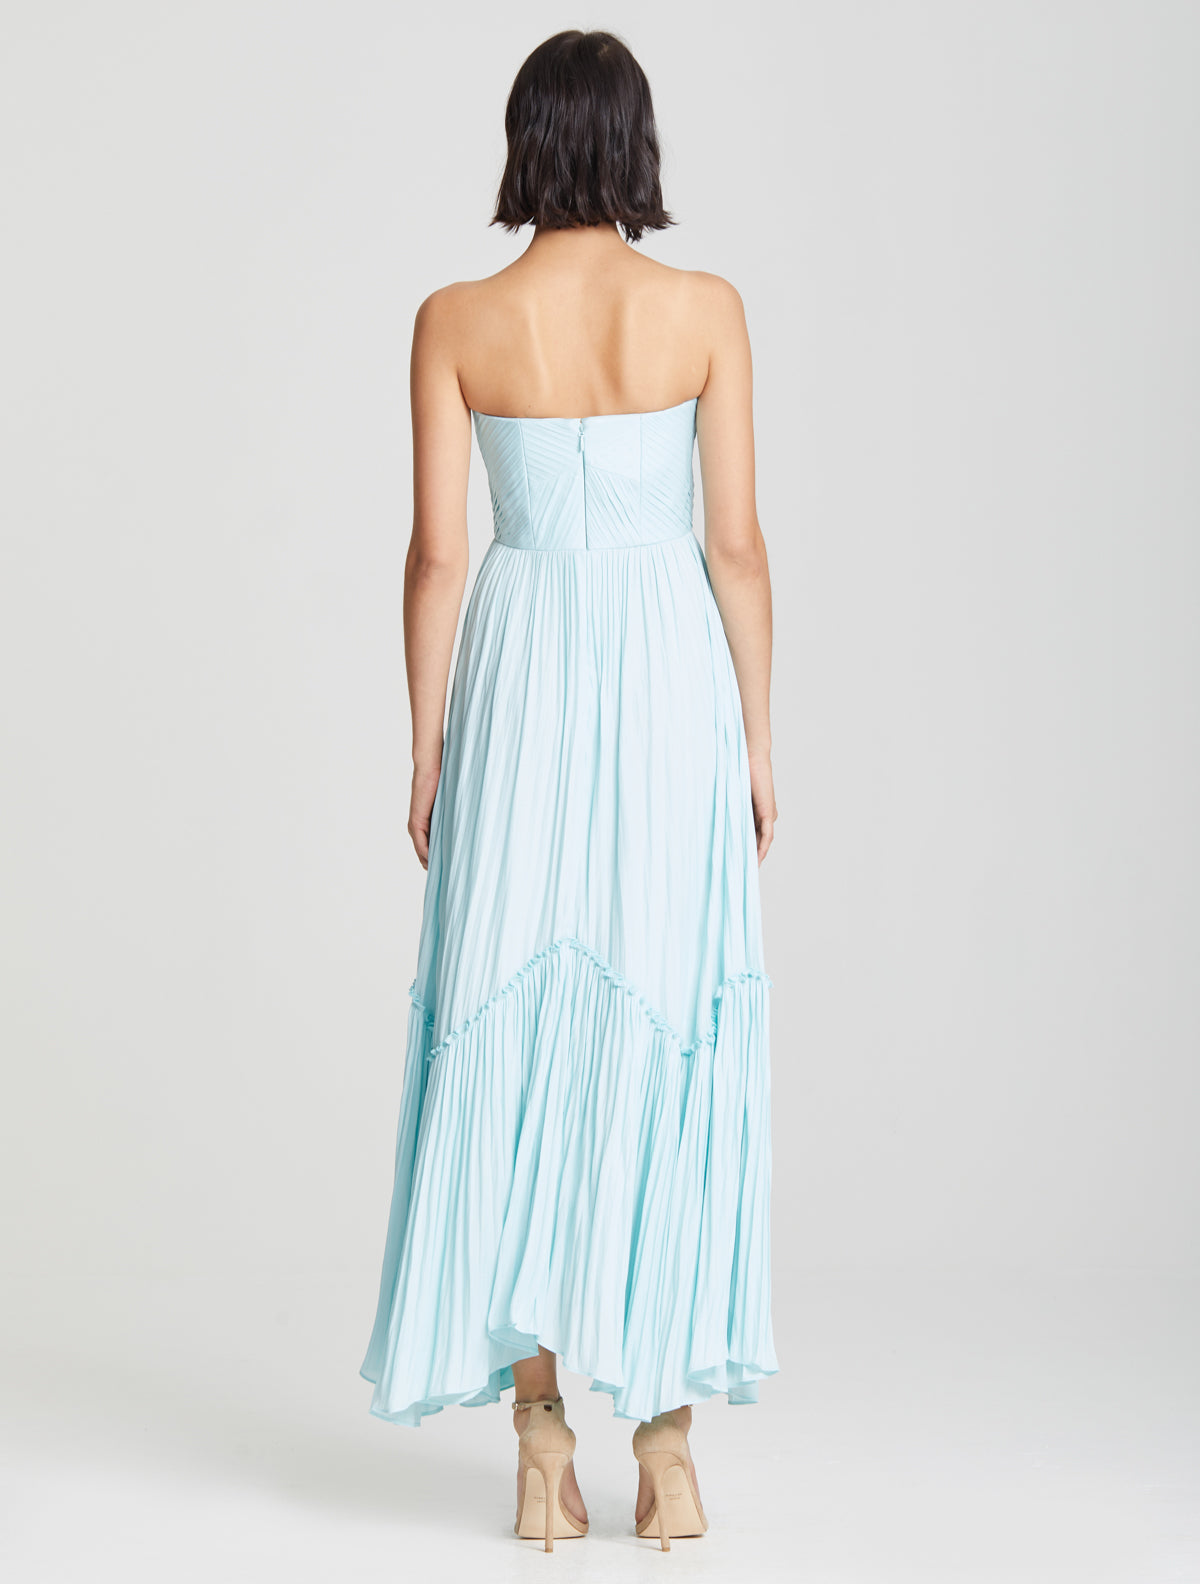 Pintuck Detail Gown - Halston